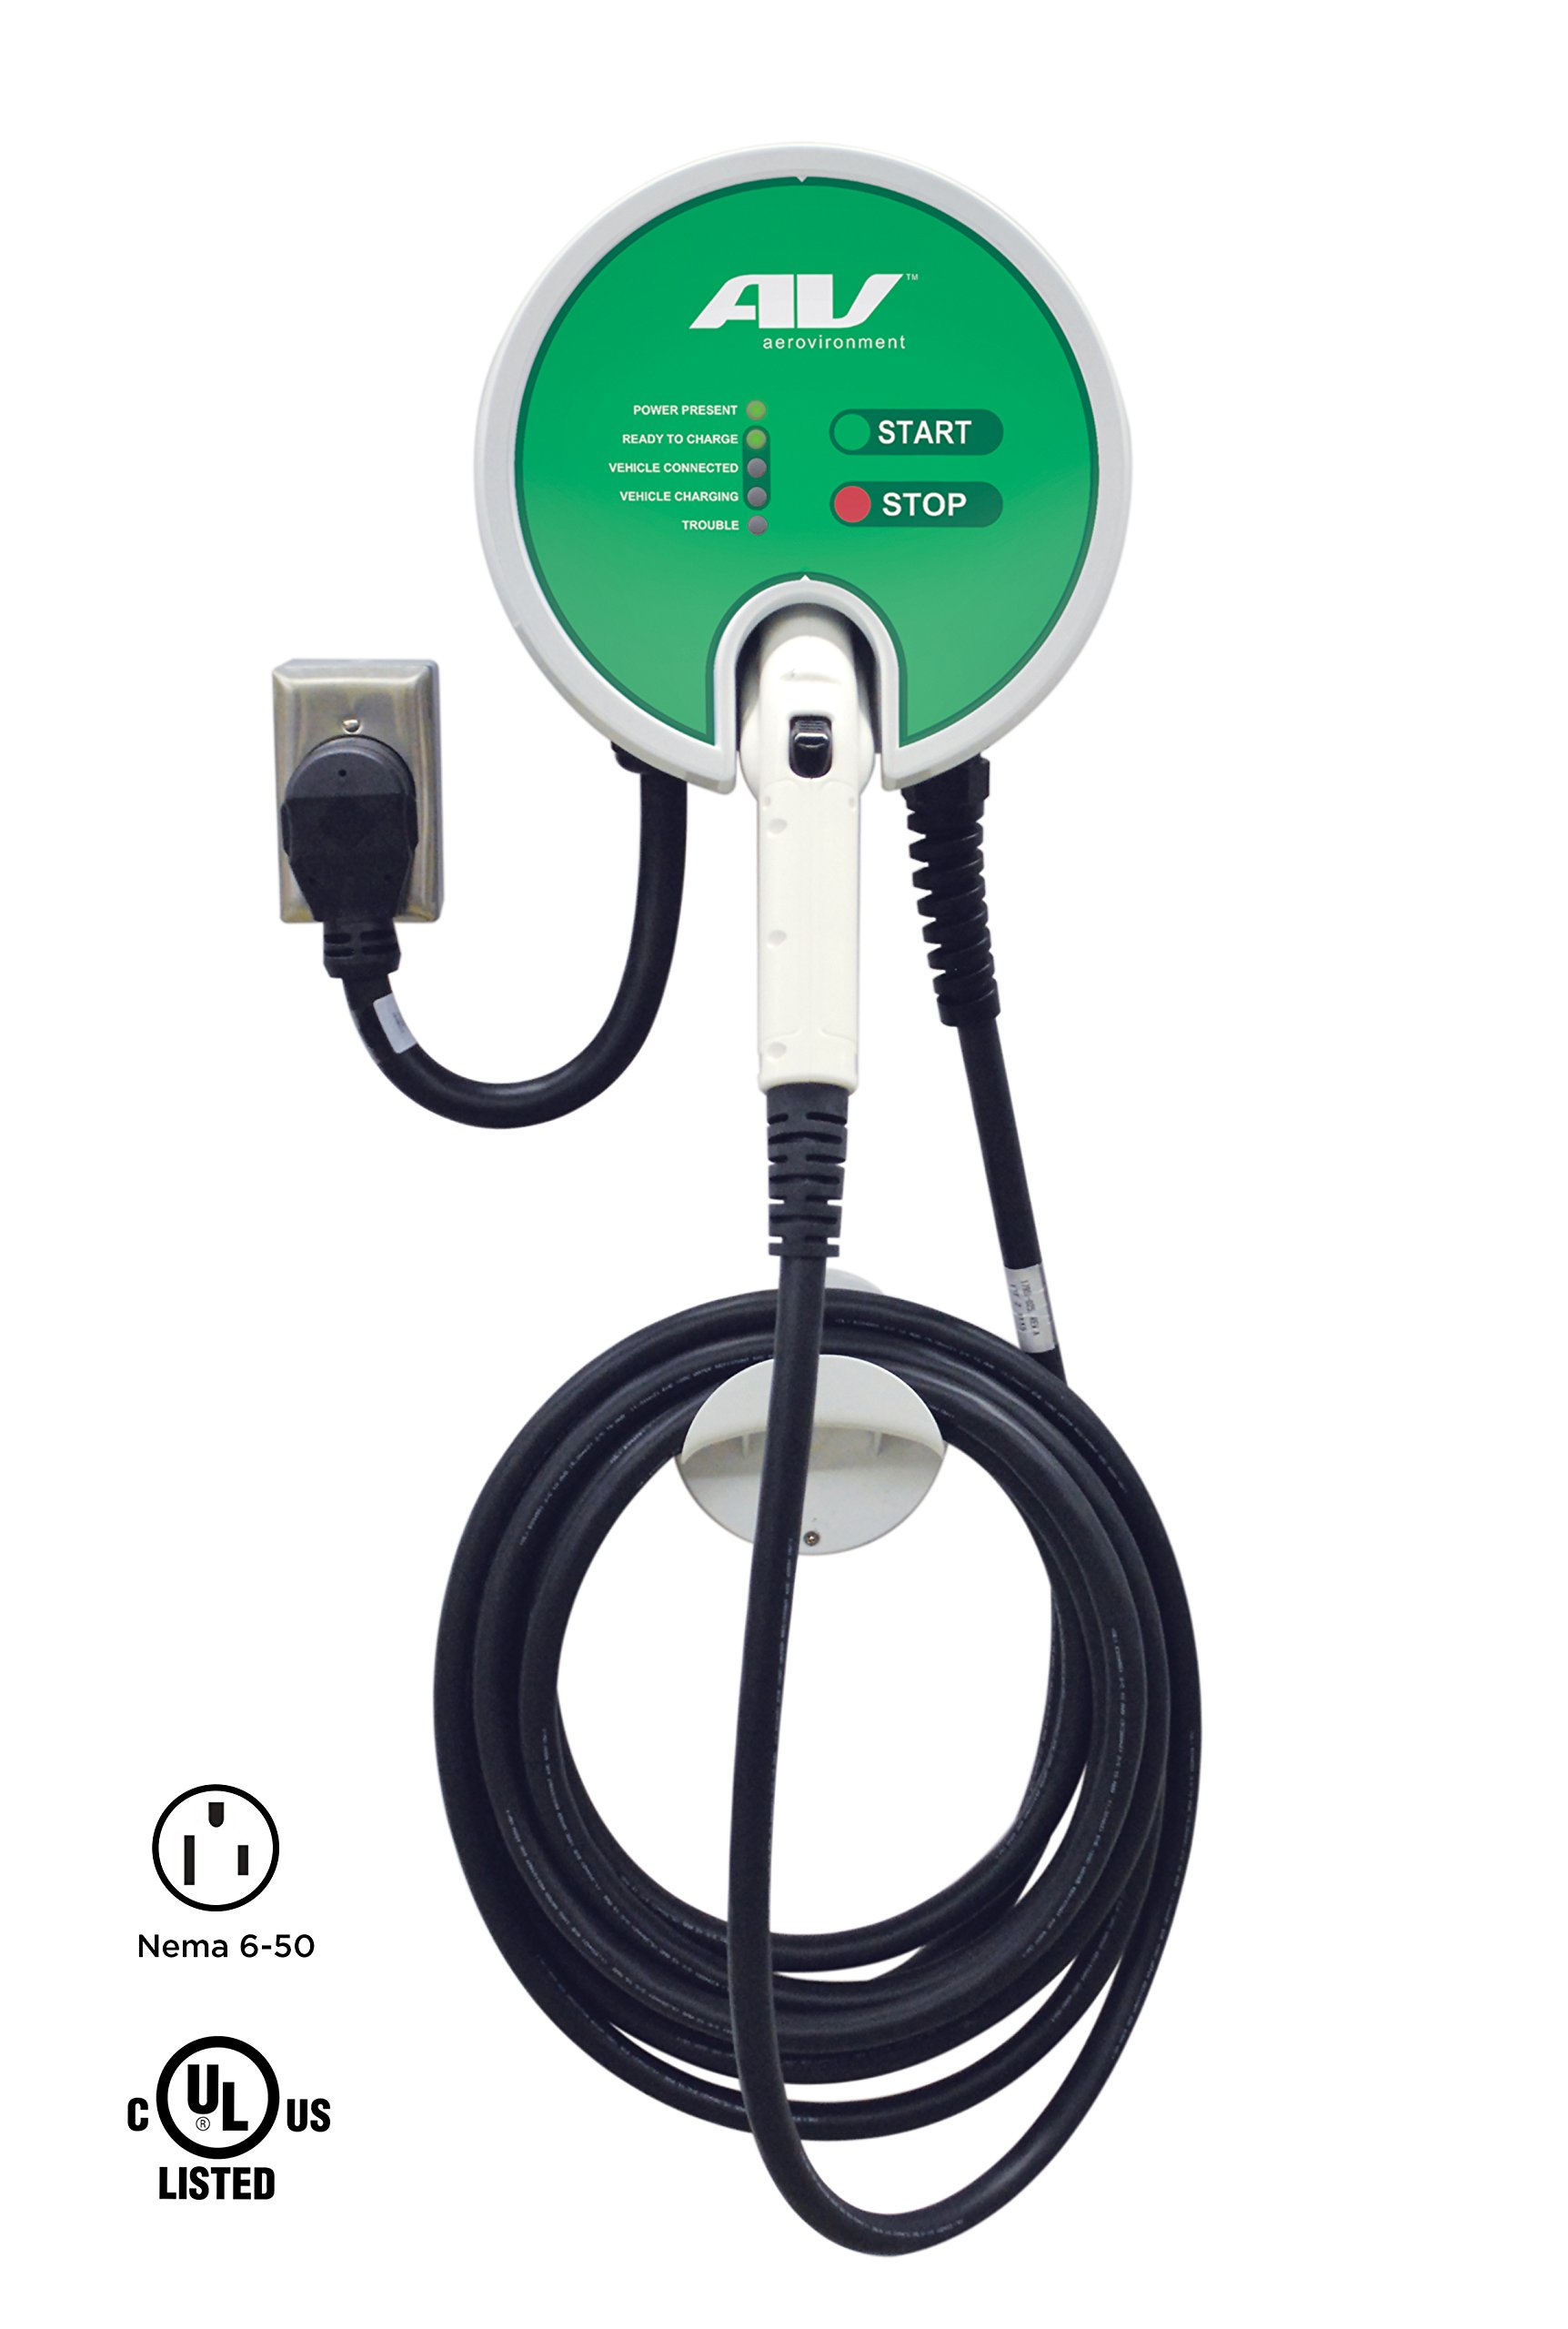 AeroVironment EV Charger: Plug-In, 25' cable, 32A, 7.7kW - SPECIAL PRICE PROMOTION! by AeroVironment (Image #2)